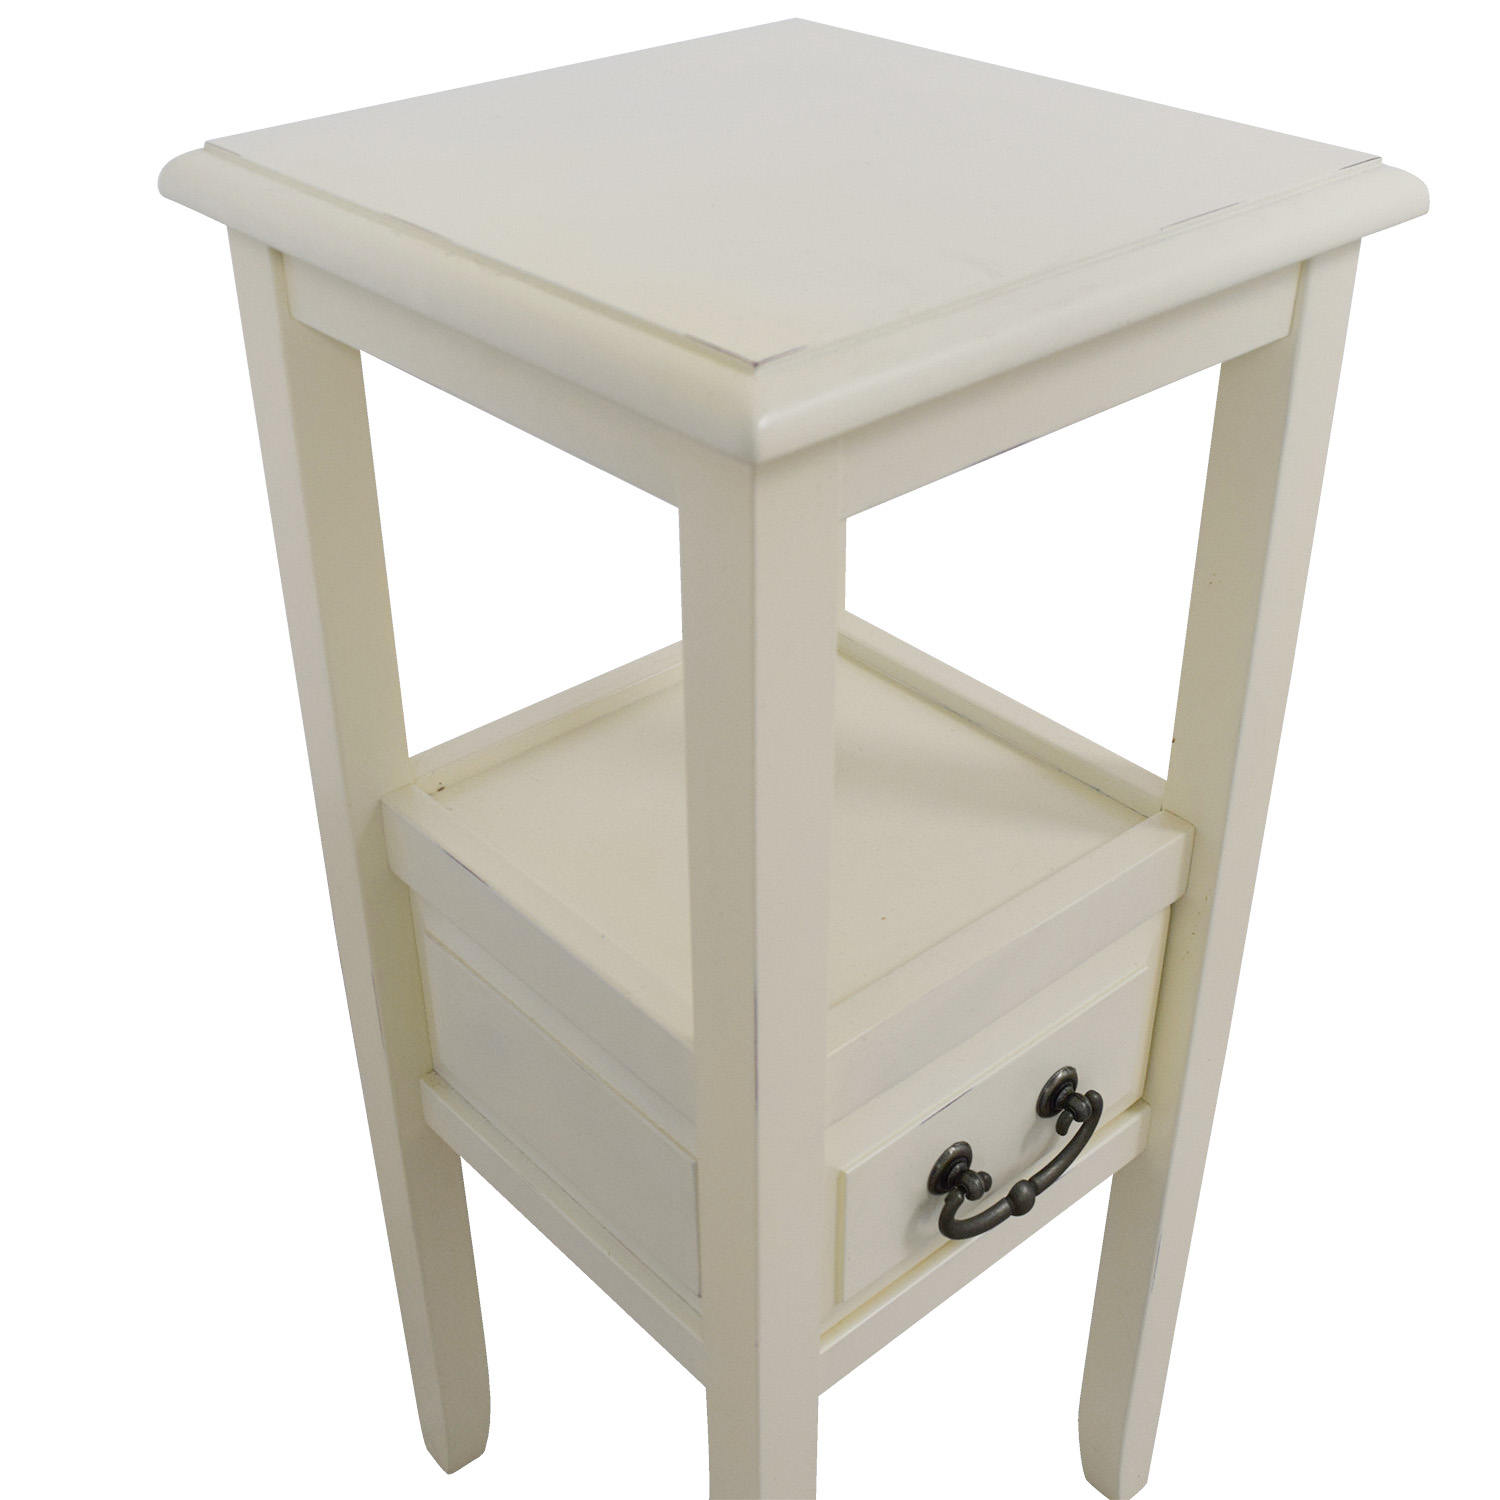 Pier 1 Pier 1 Imports Off White Side Table / Tables